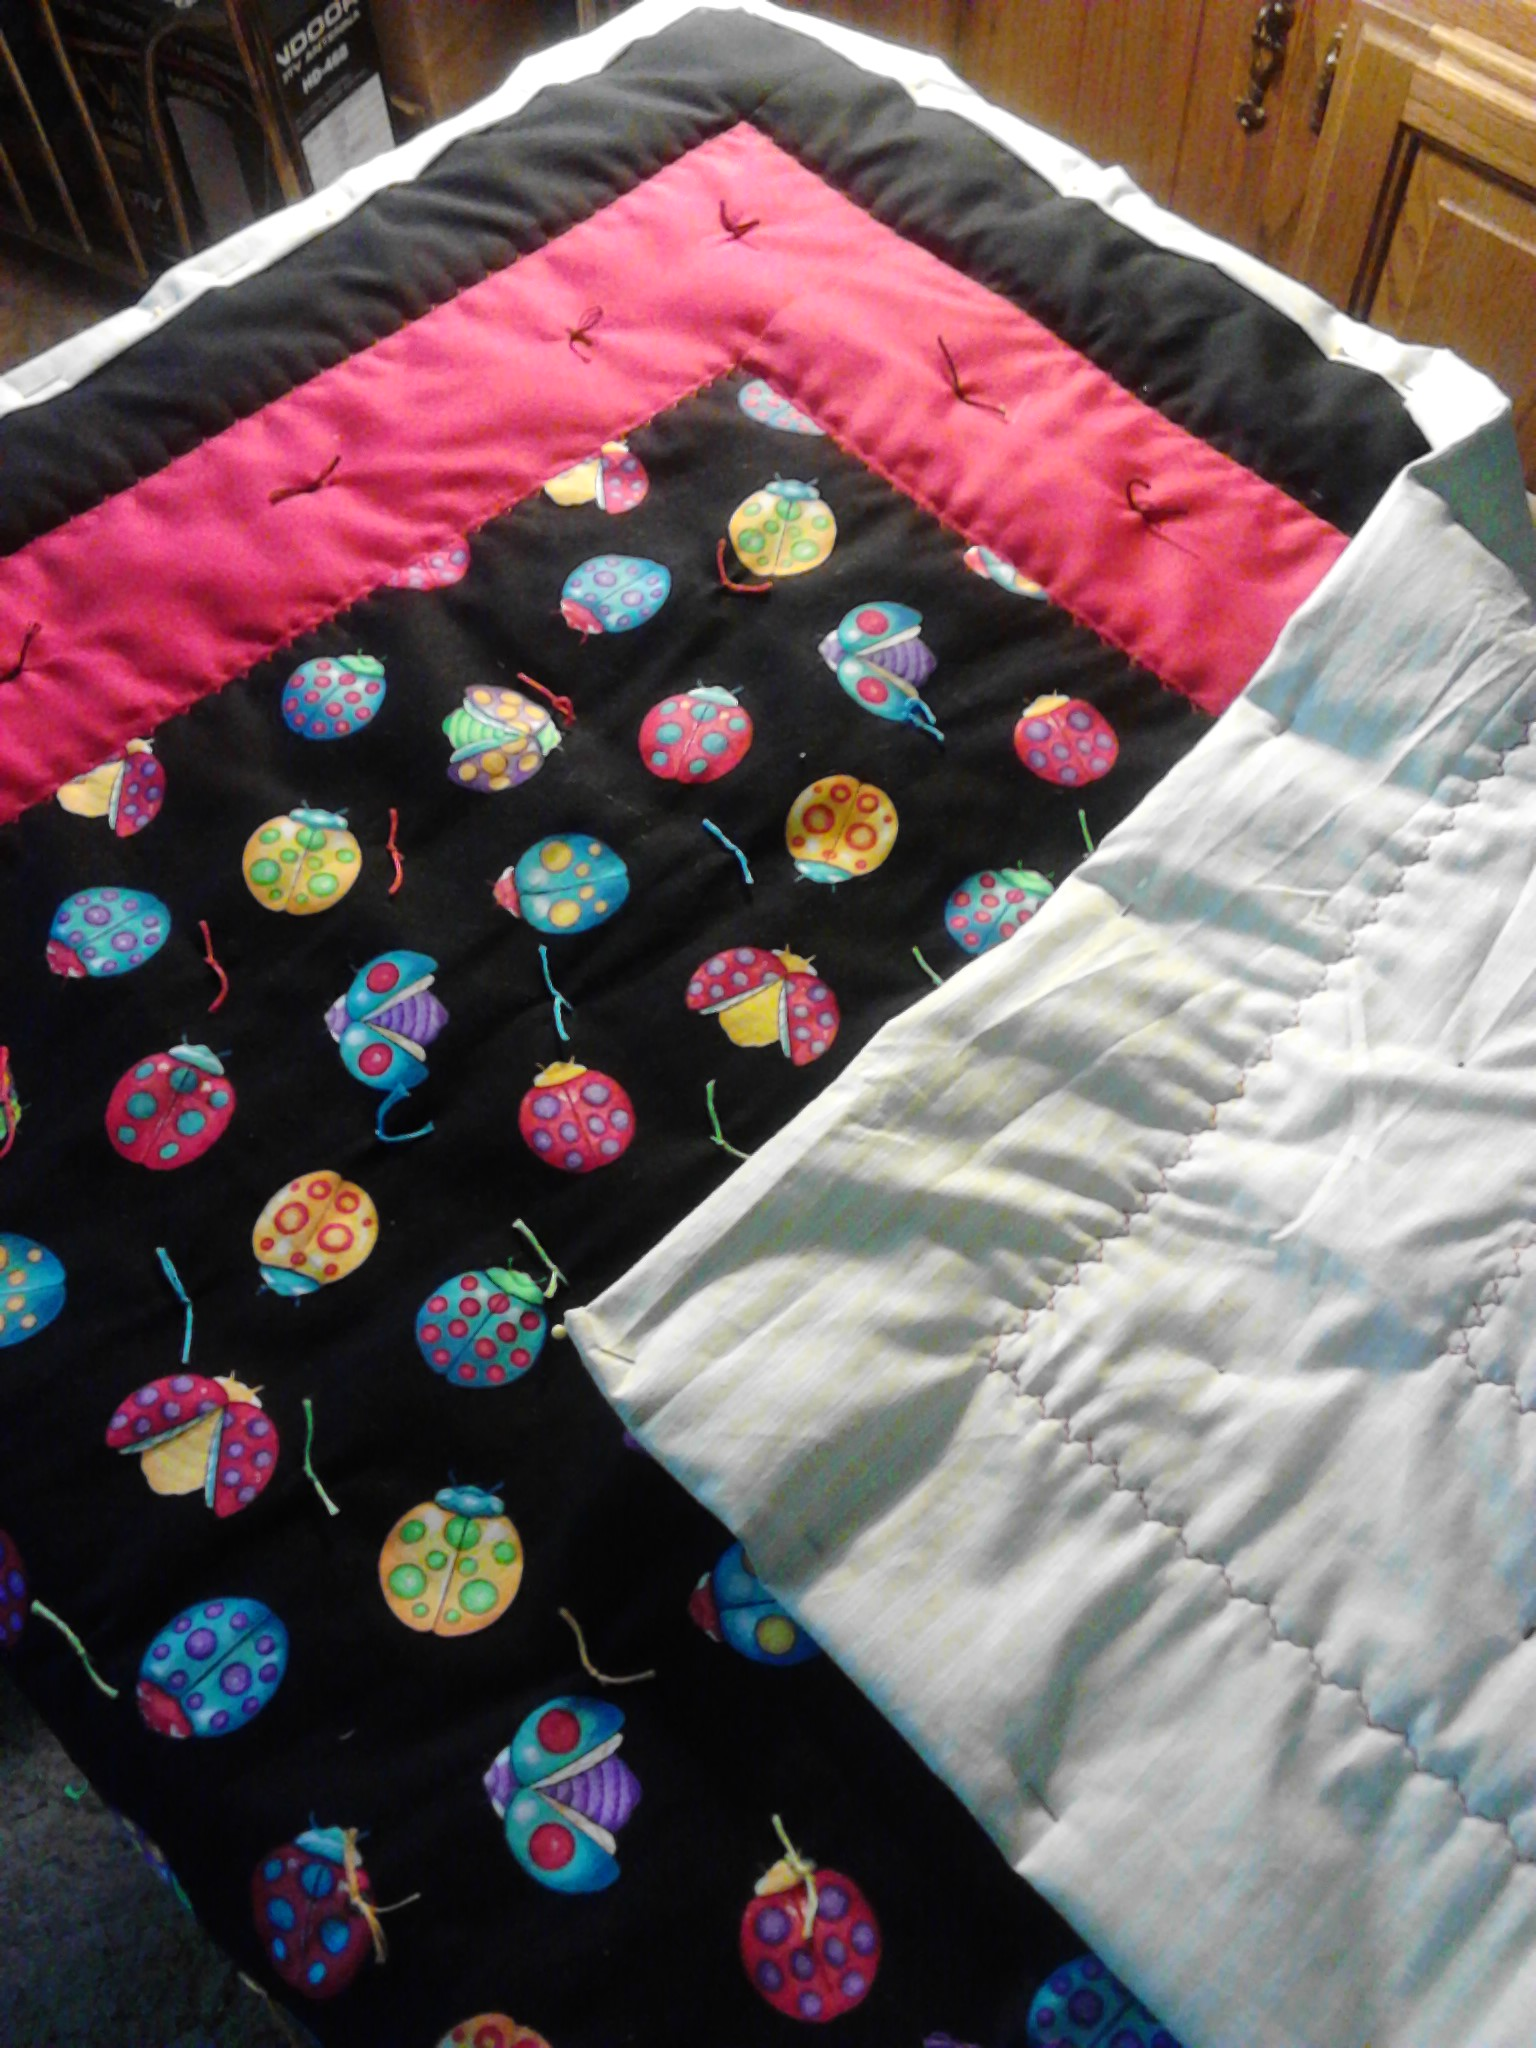 Quilted blankets